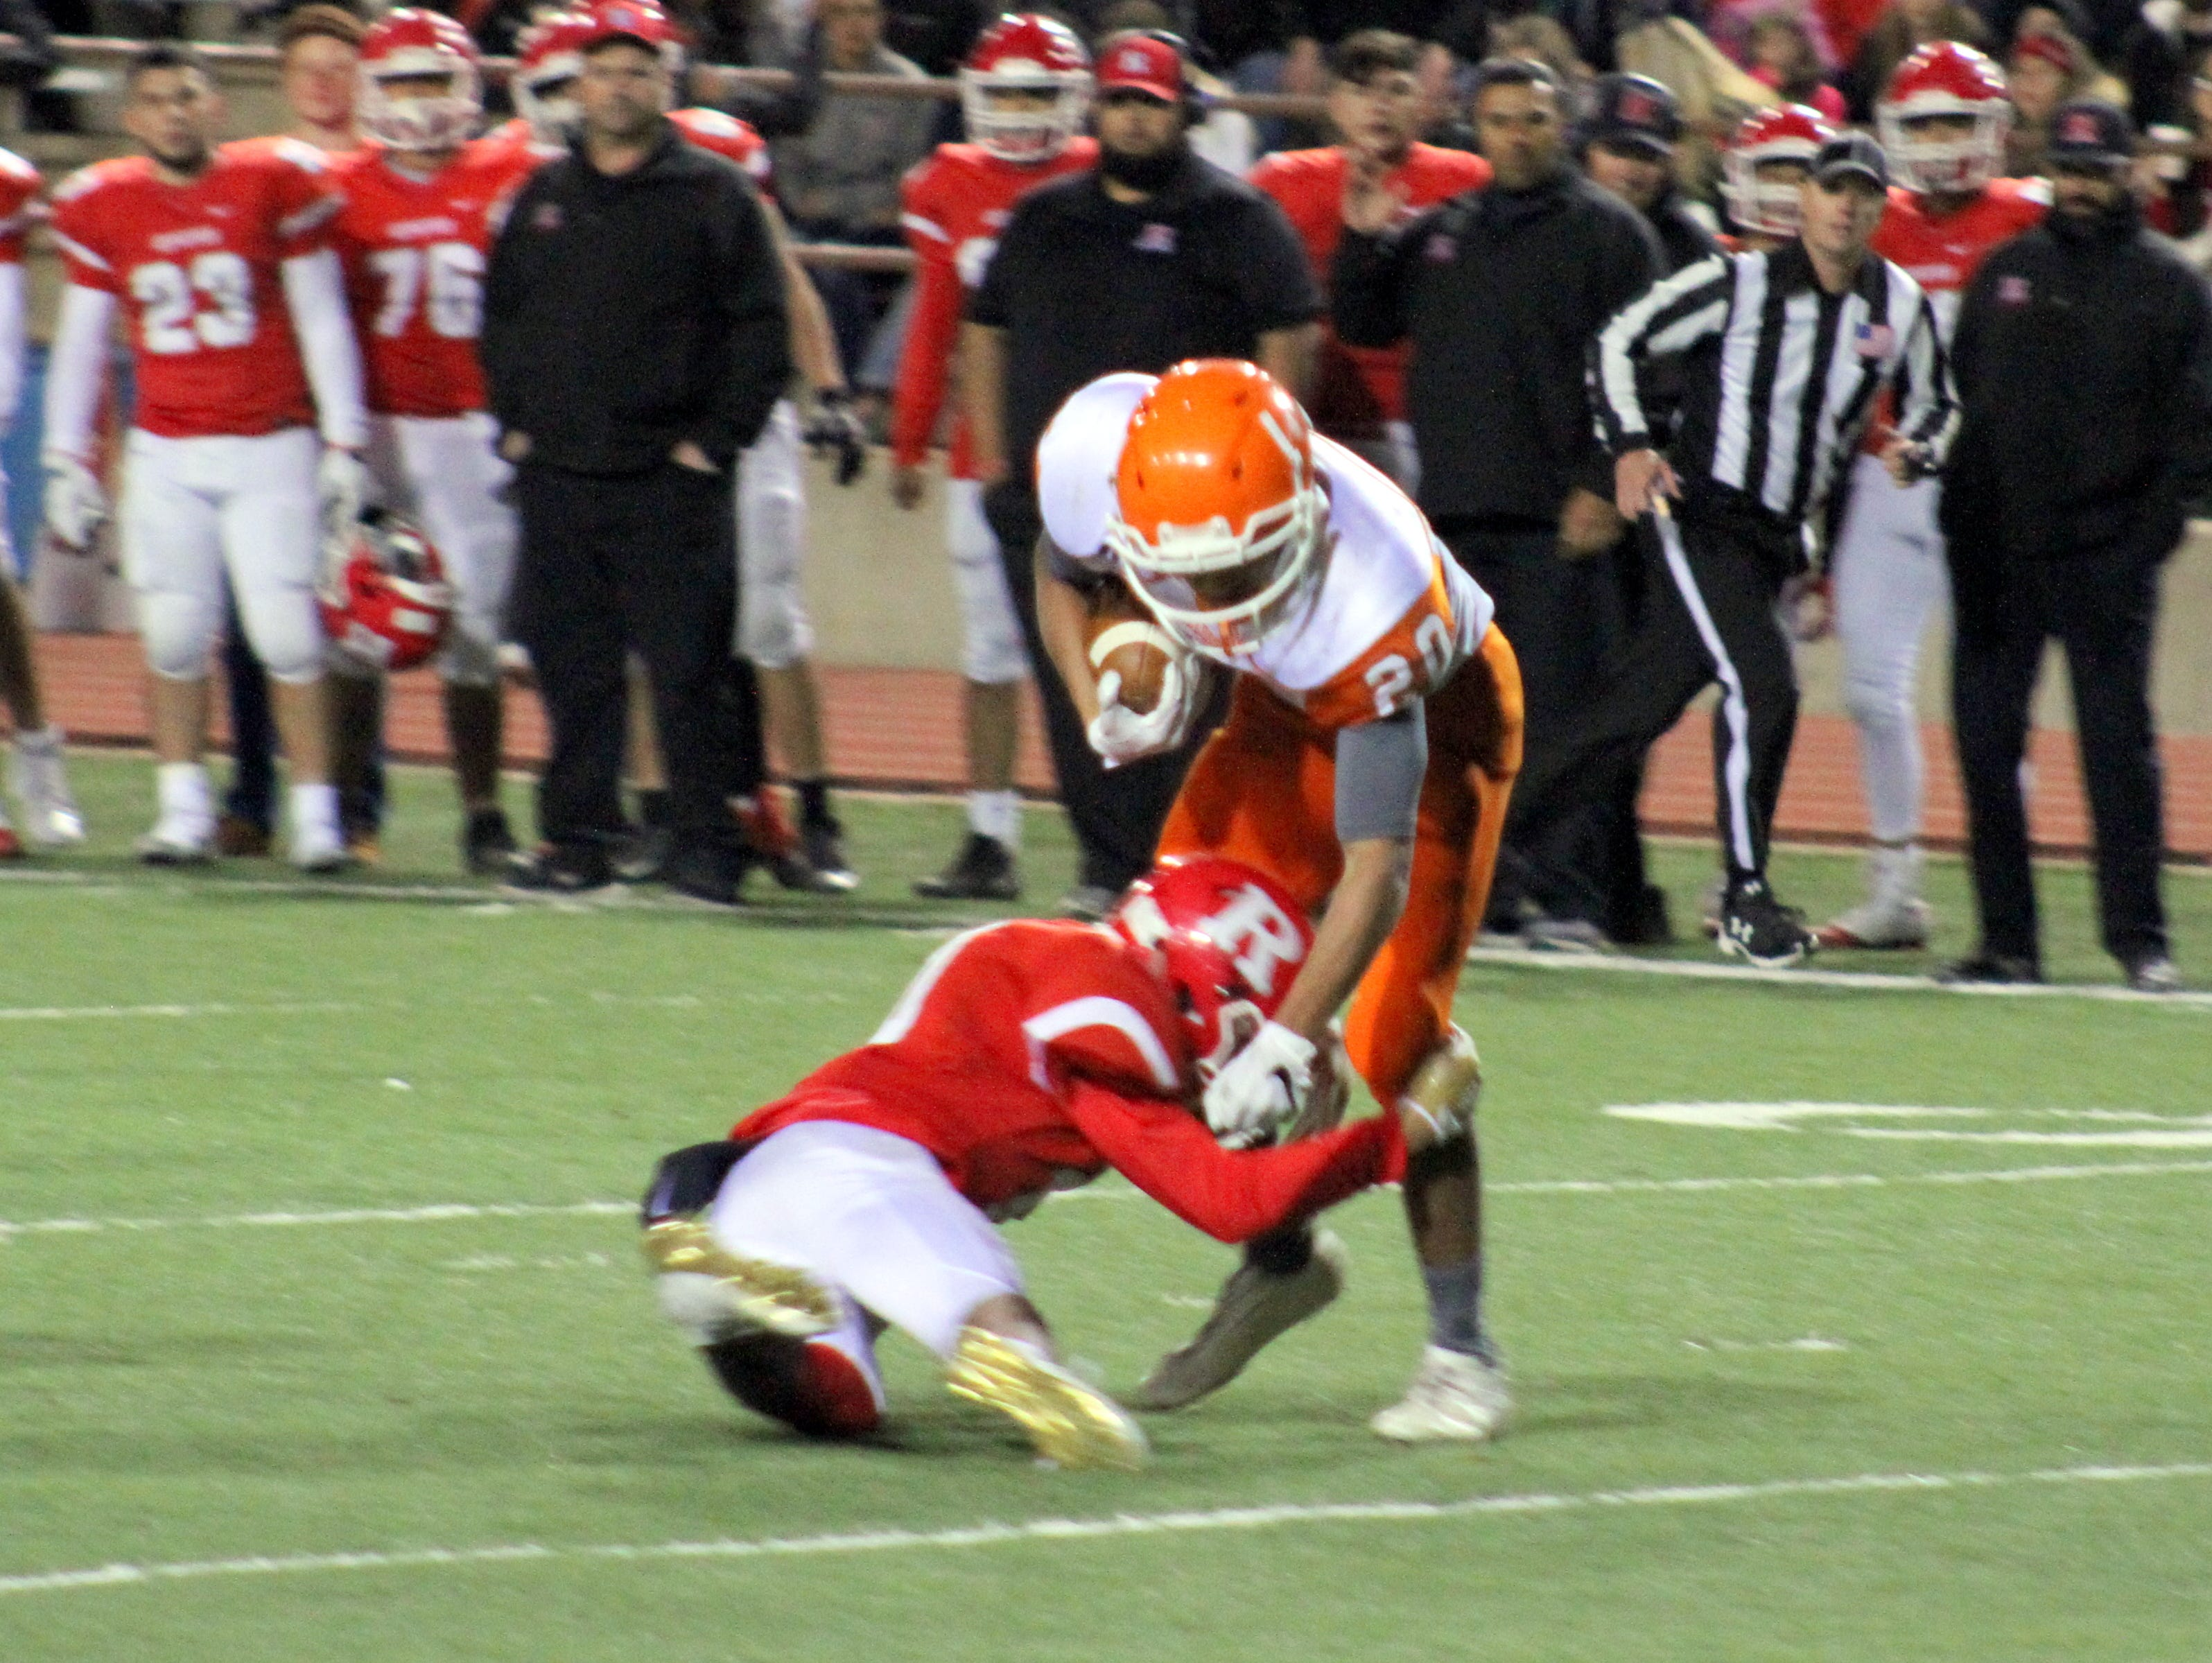 Artesia's Alex Fernandez escapes a Roswell tackler during Friday's Class 5A semifinal game. Fernandez finished with seven catches, 43 yards and one touchdown.